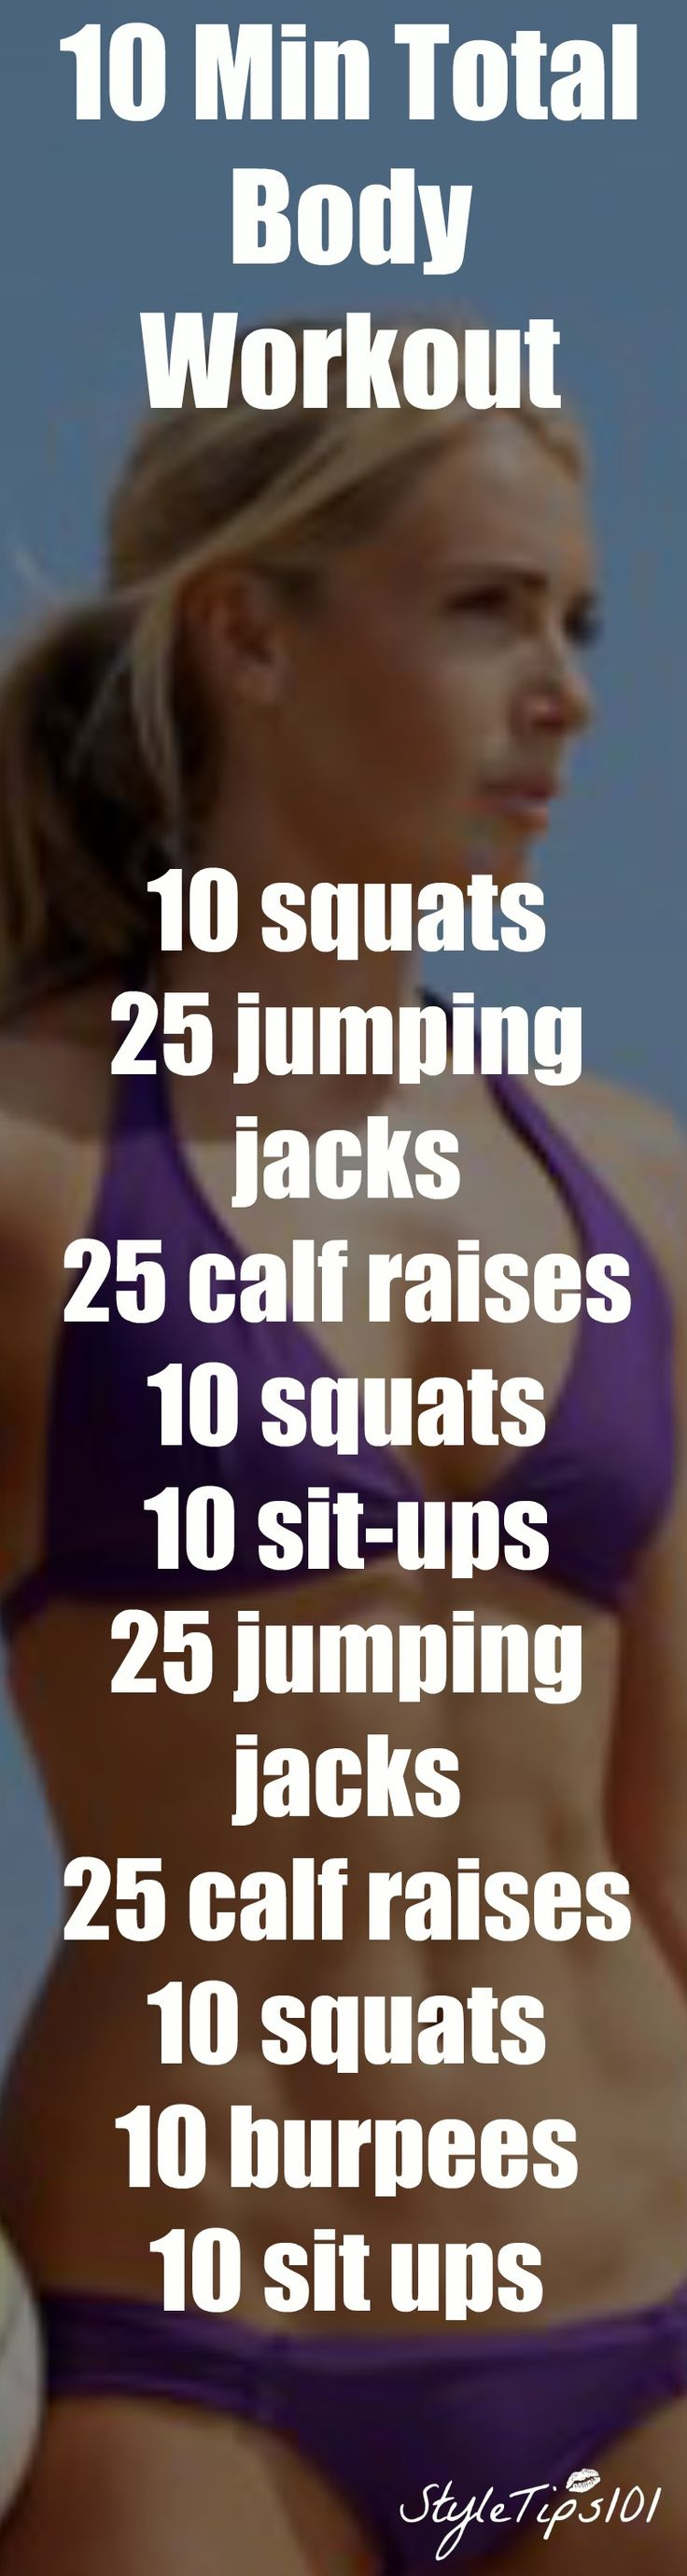 This 10 minute total body workout will completely transform your body!